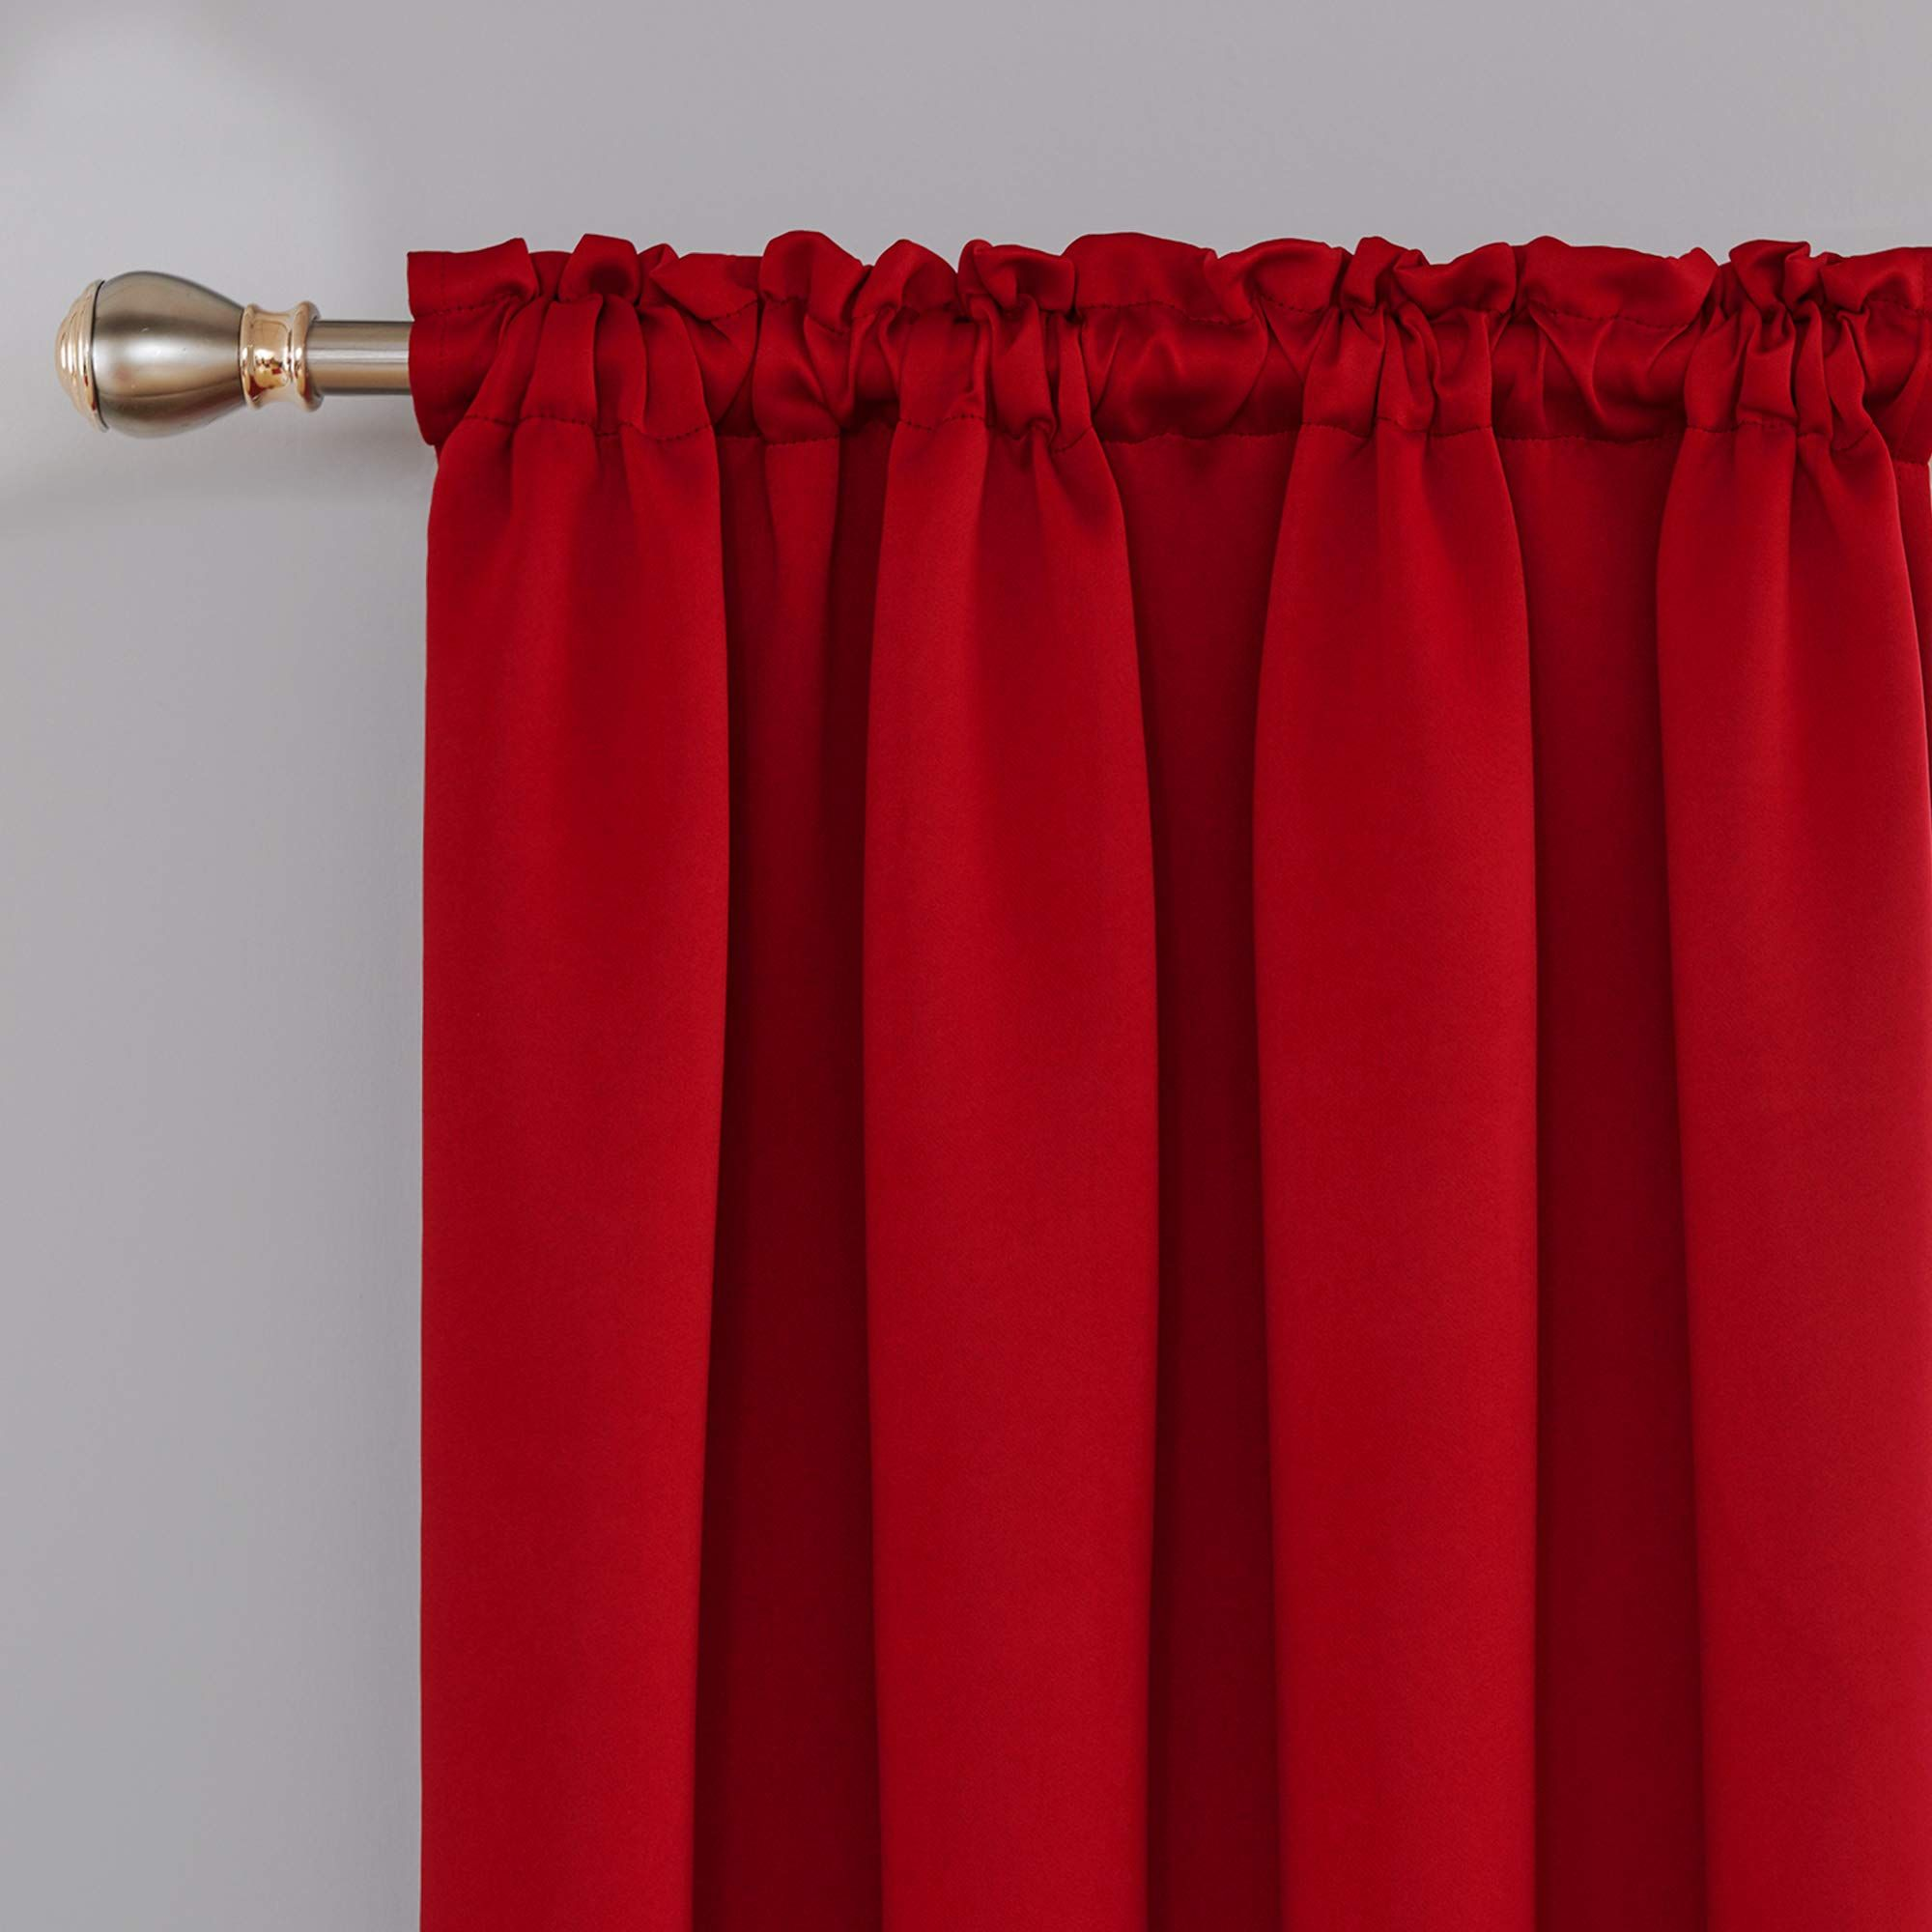 Deconovo Red Blackout Curtains Rod Pocket Drapes Window Curtains For Bedroom True Red 42w X 84l Inch 2 Panels Read In 2020 Curtains Rod Pocket Drapes Window Drapes